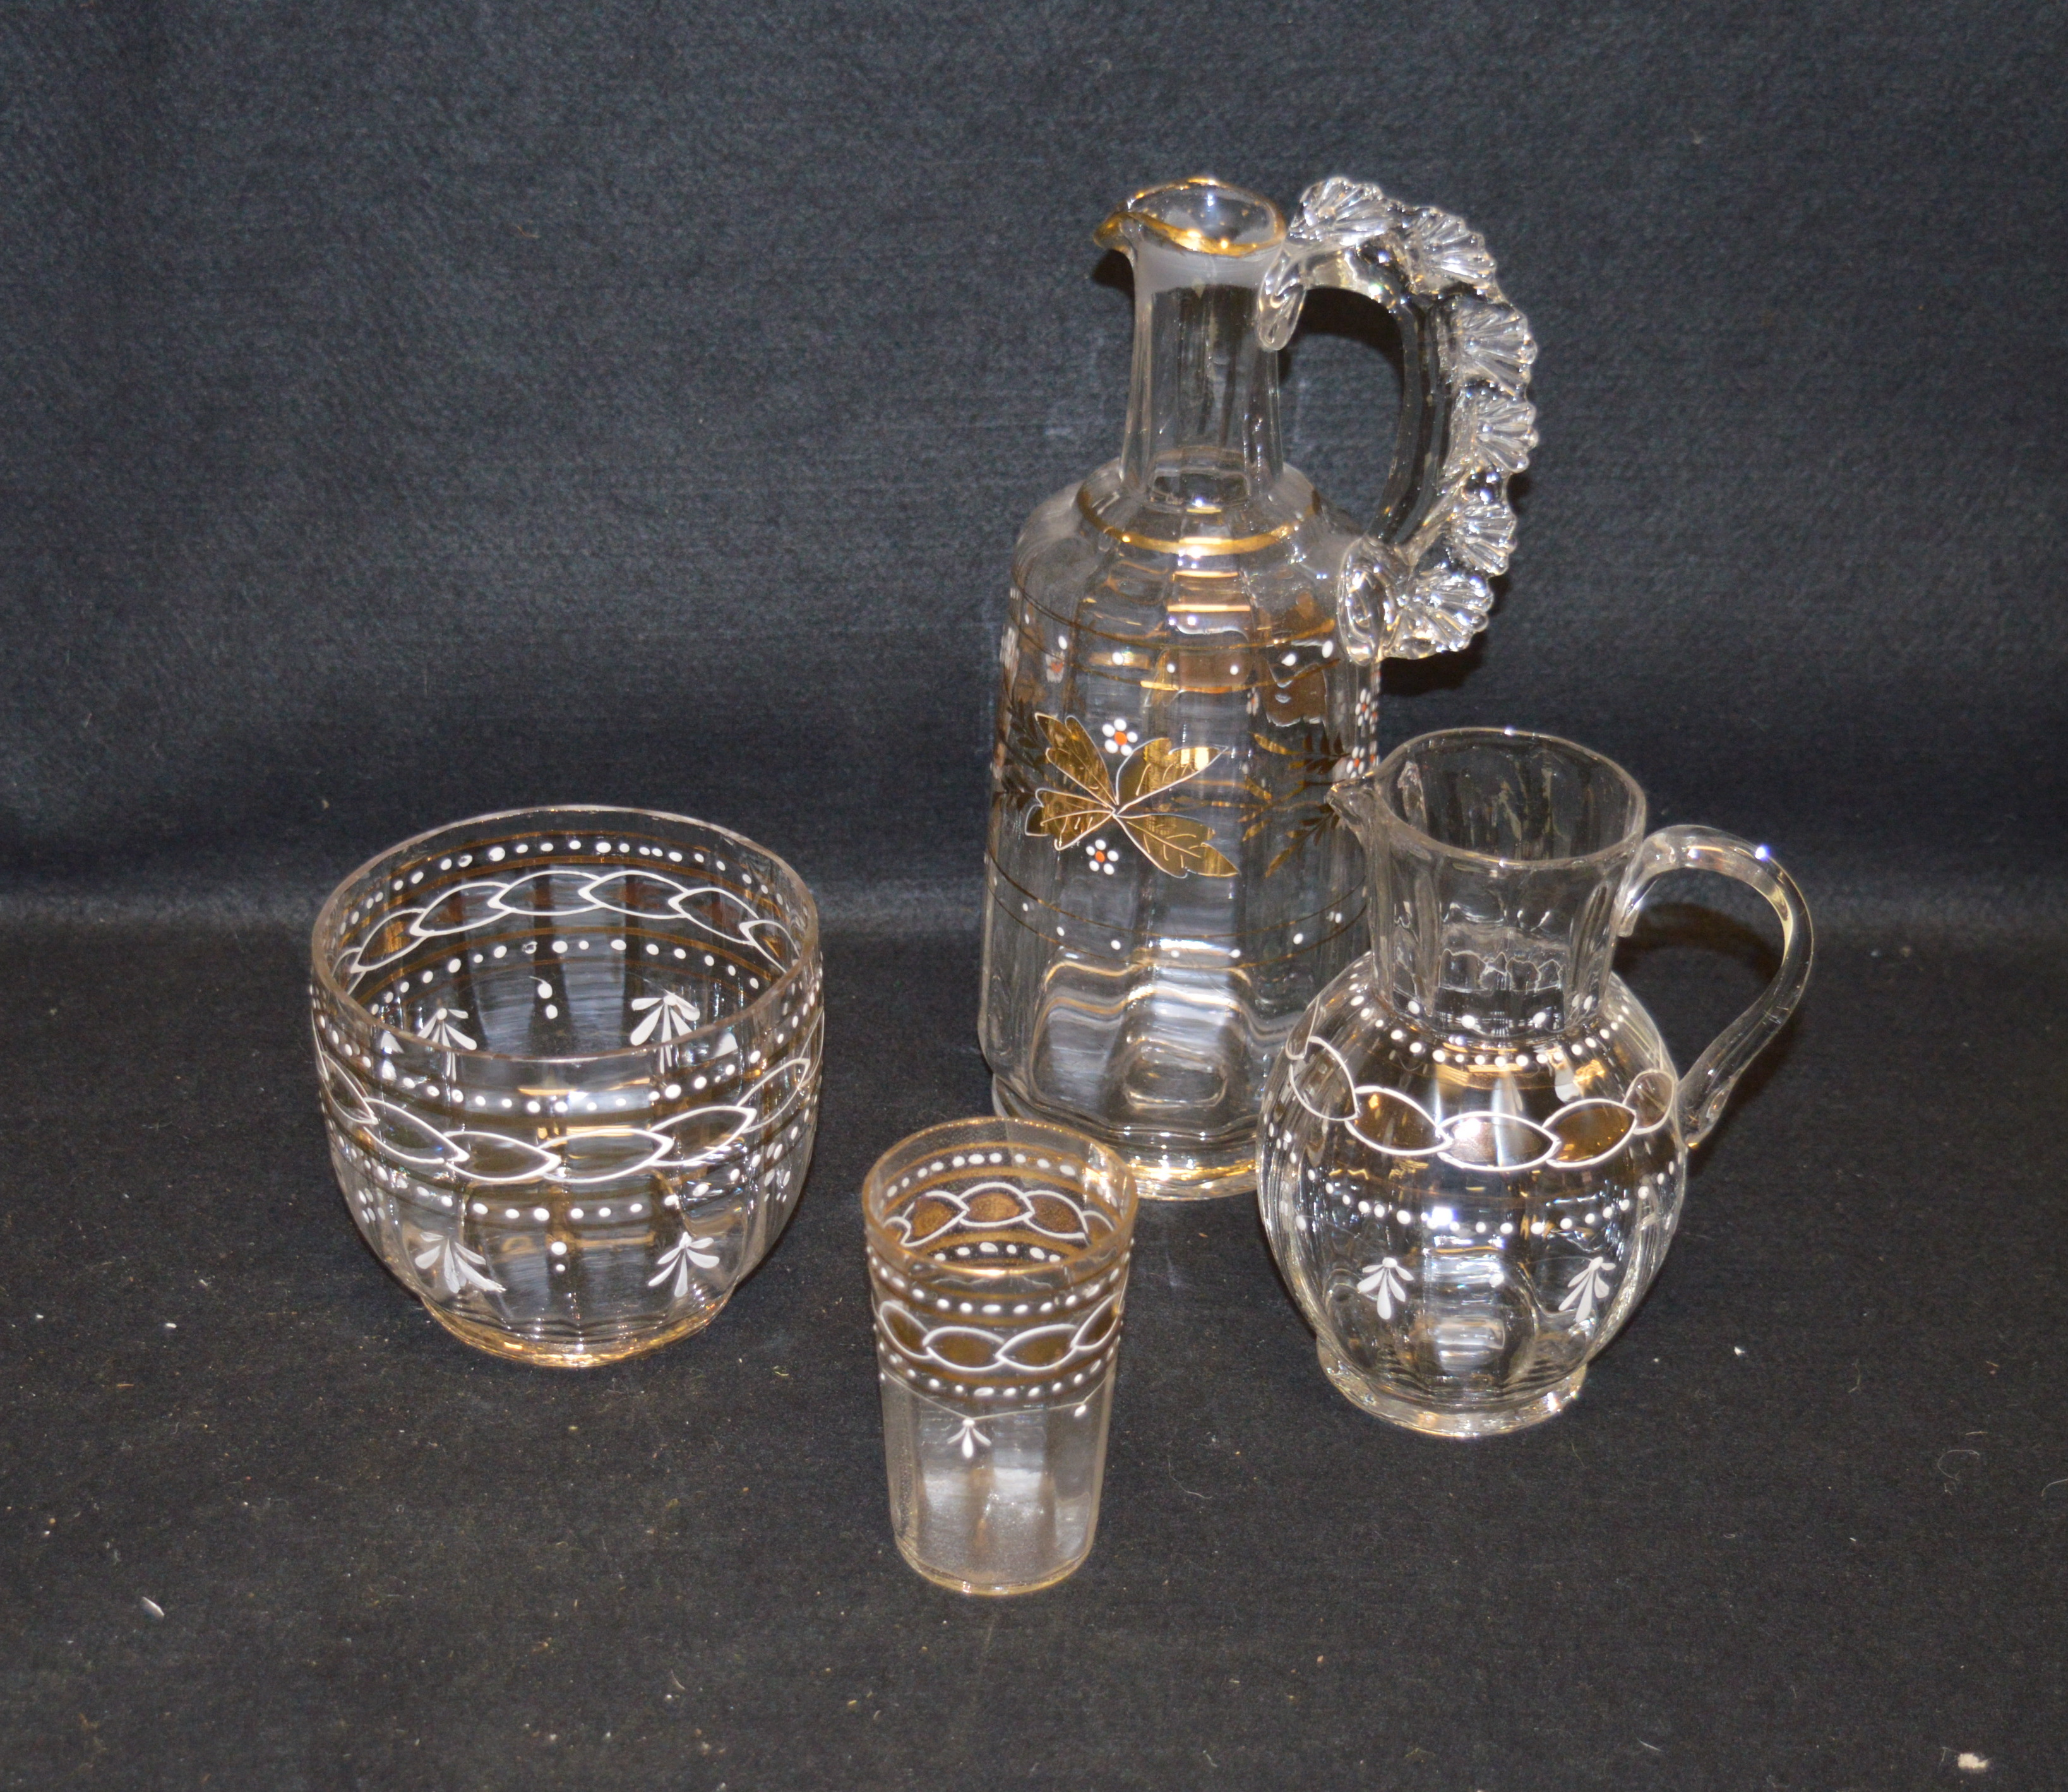 Lot 15 - A Collection of Four Pieces of Hand Painted Crystal Including a Lidded Decanter